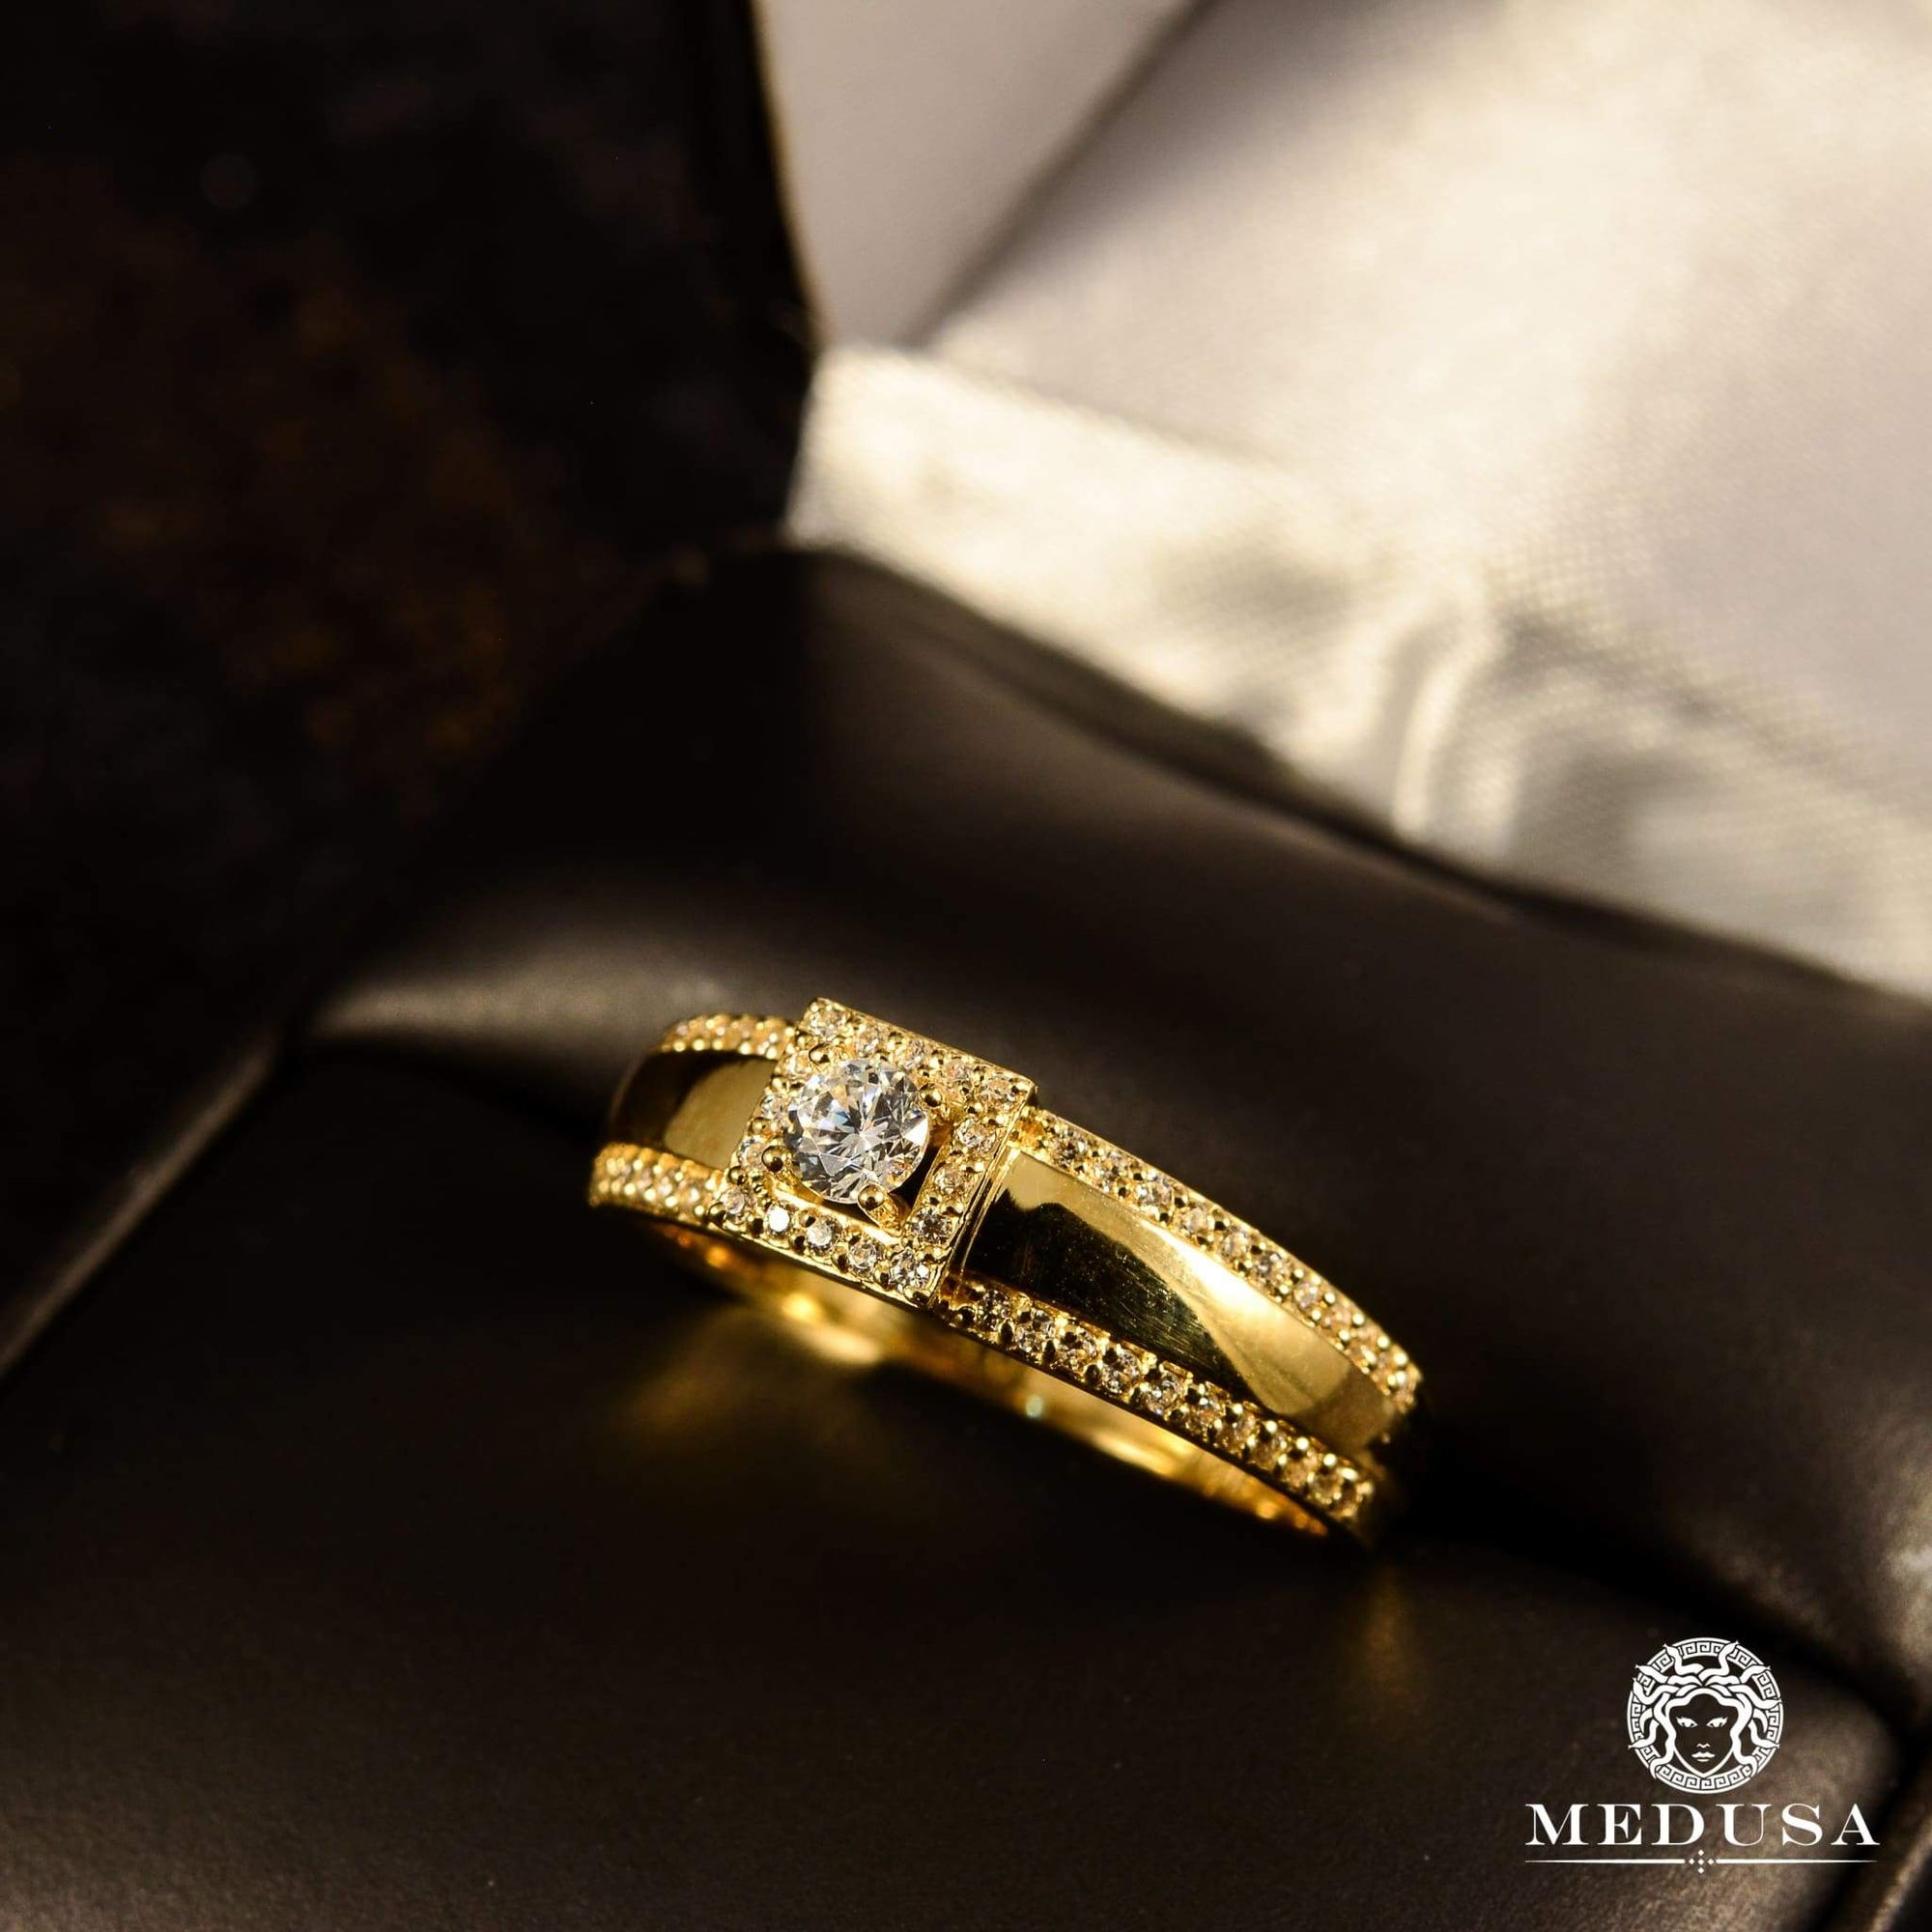 Bague à Diamants en Or 14K | Bague Fiançaille Solitaire F16 - MA0797